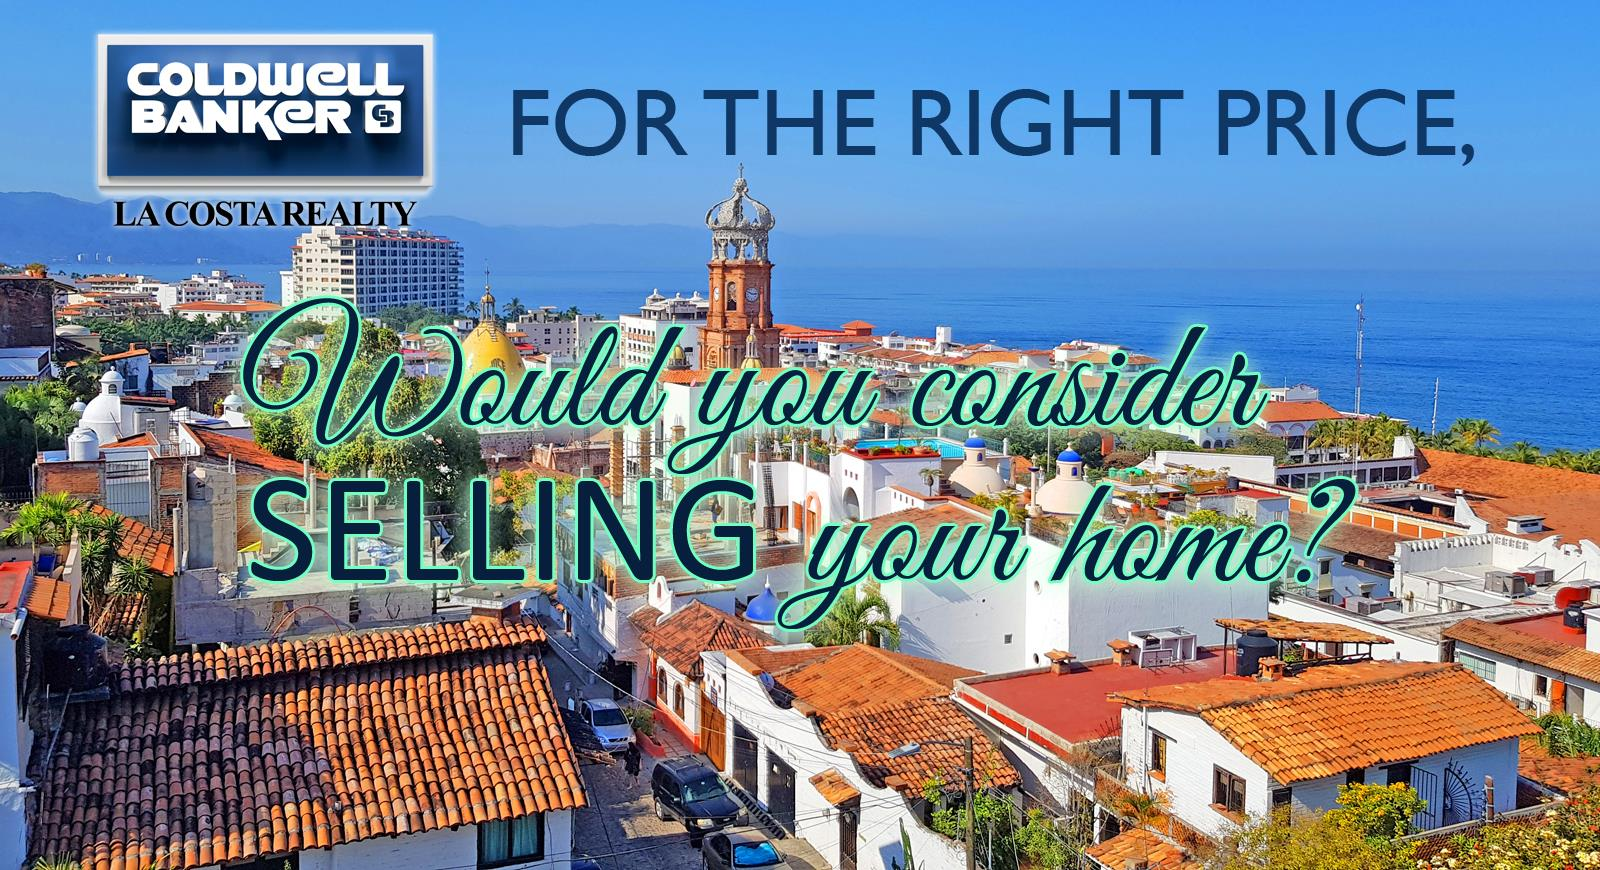 For the right price, would you consider SELLING your home?